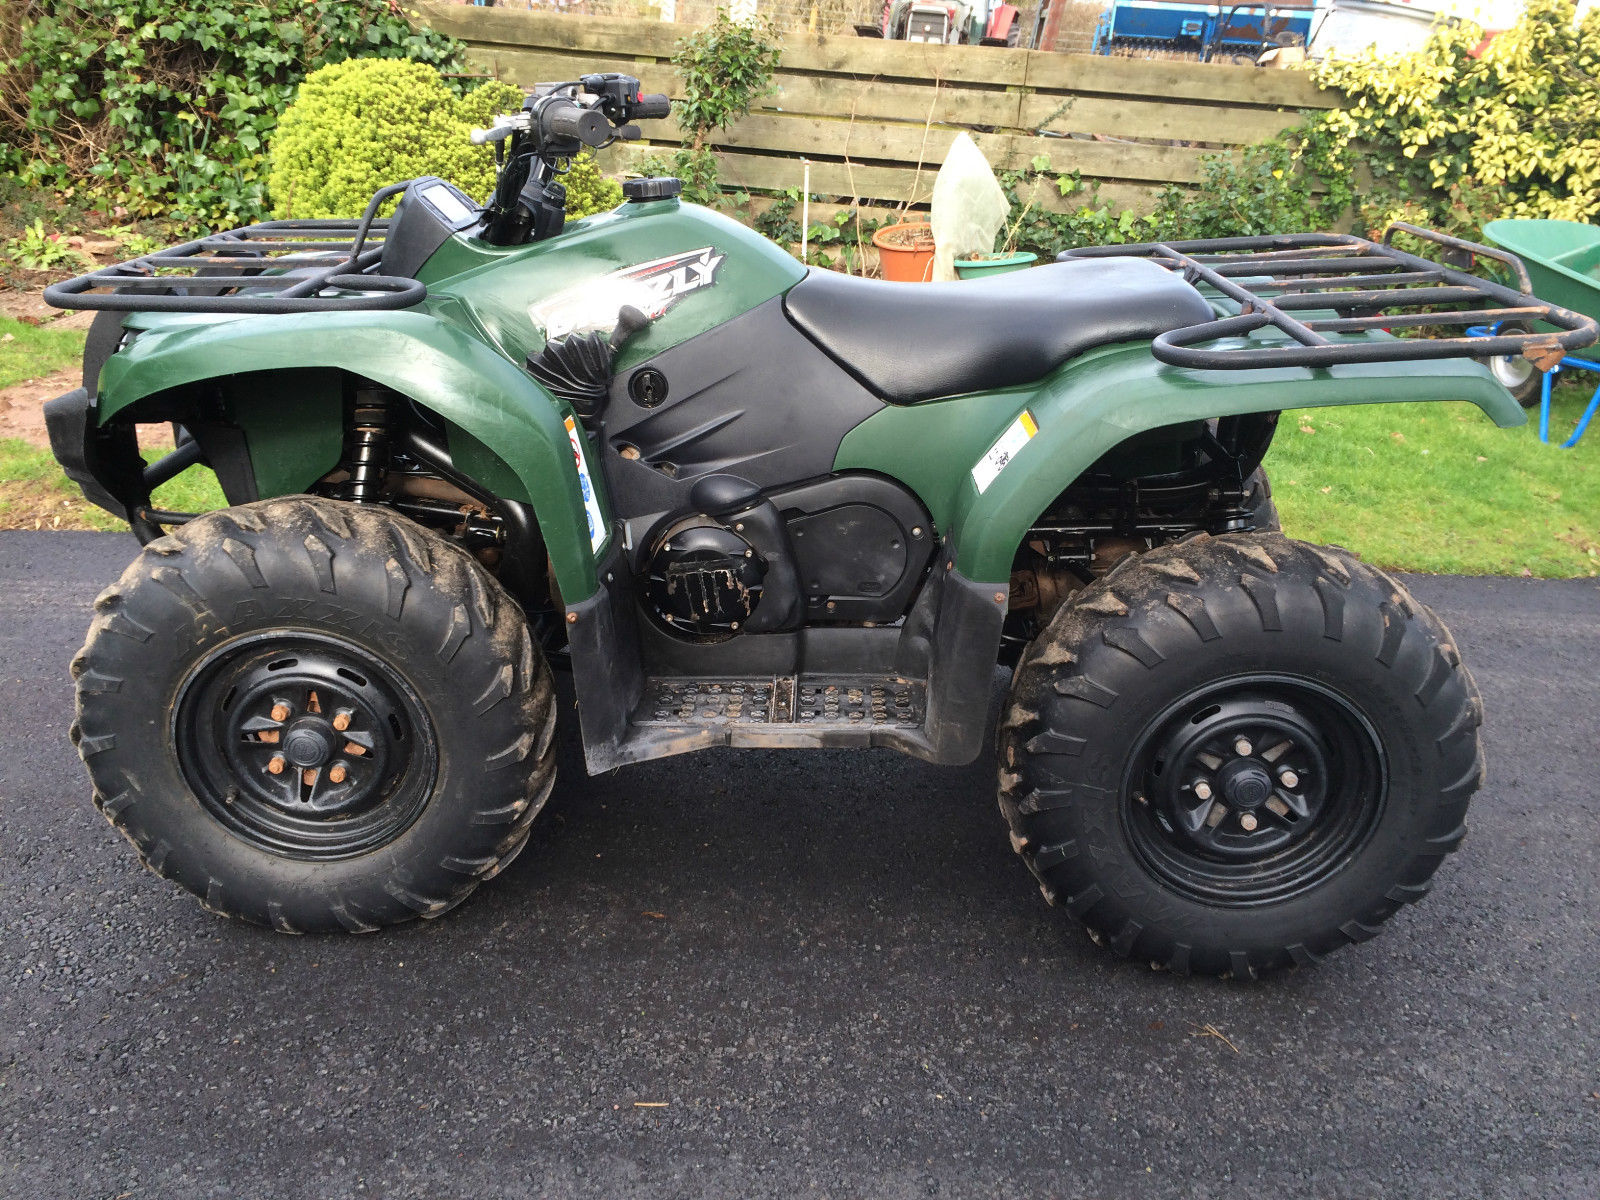 Yamaha grizzly 450 4x4 farm quad atv for Yamaha grizzly atv